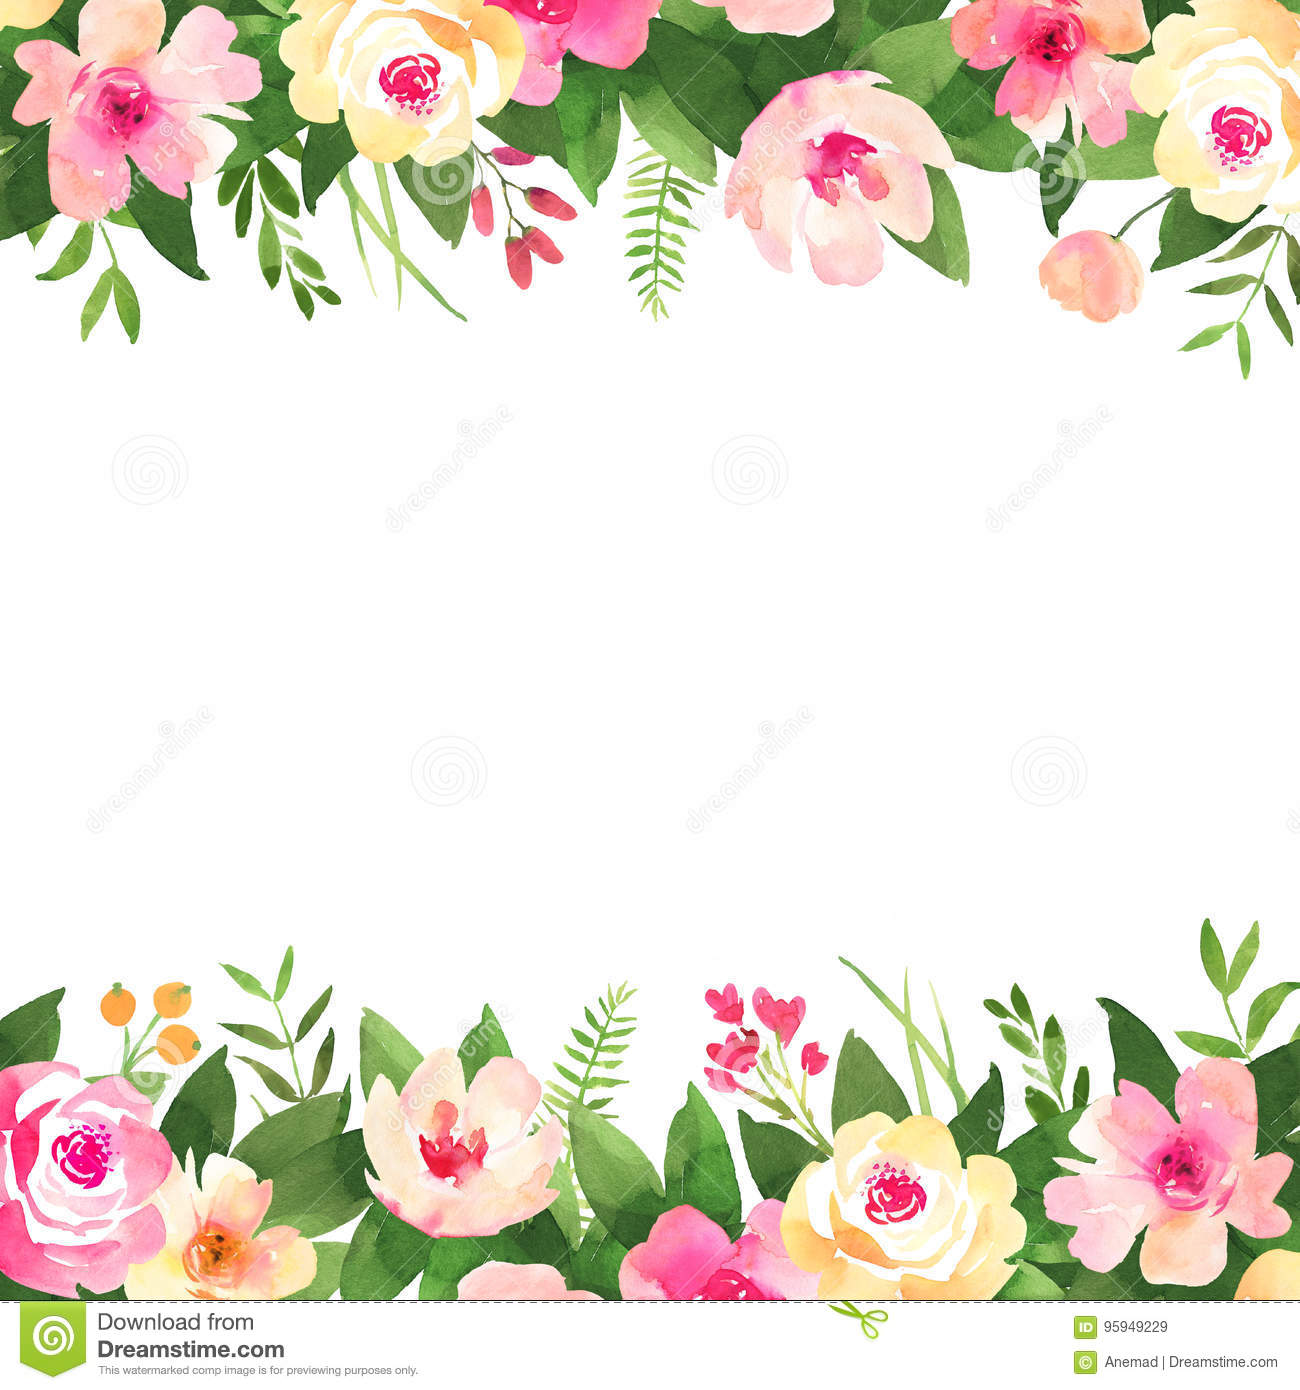 Floral Wedding Background With Roses Watercolor